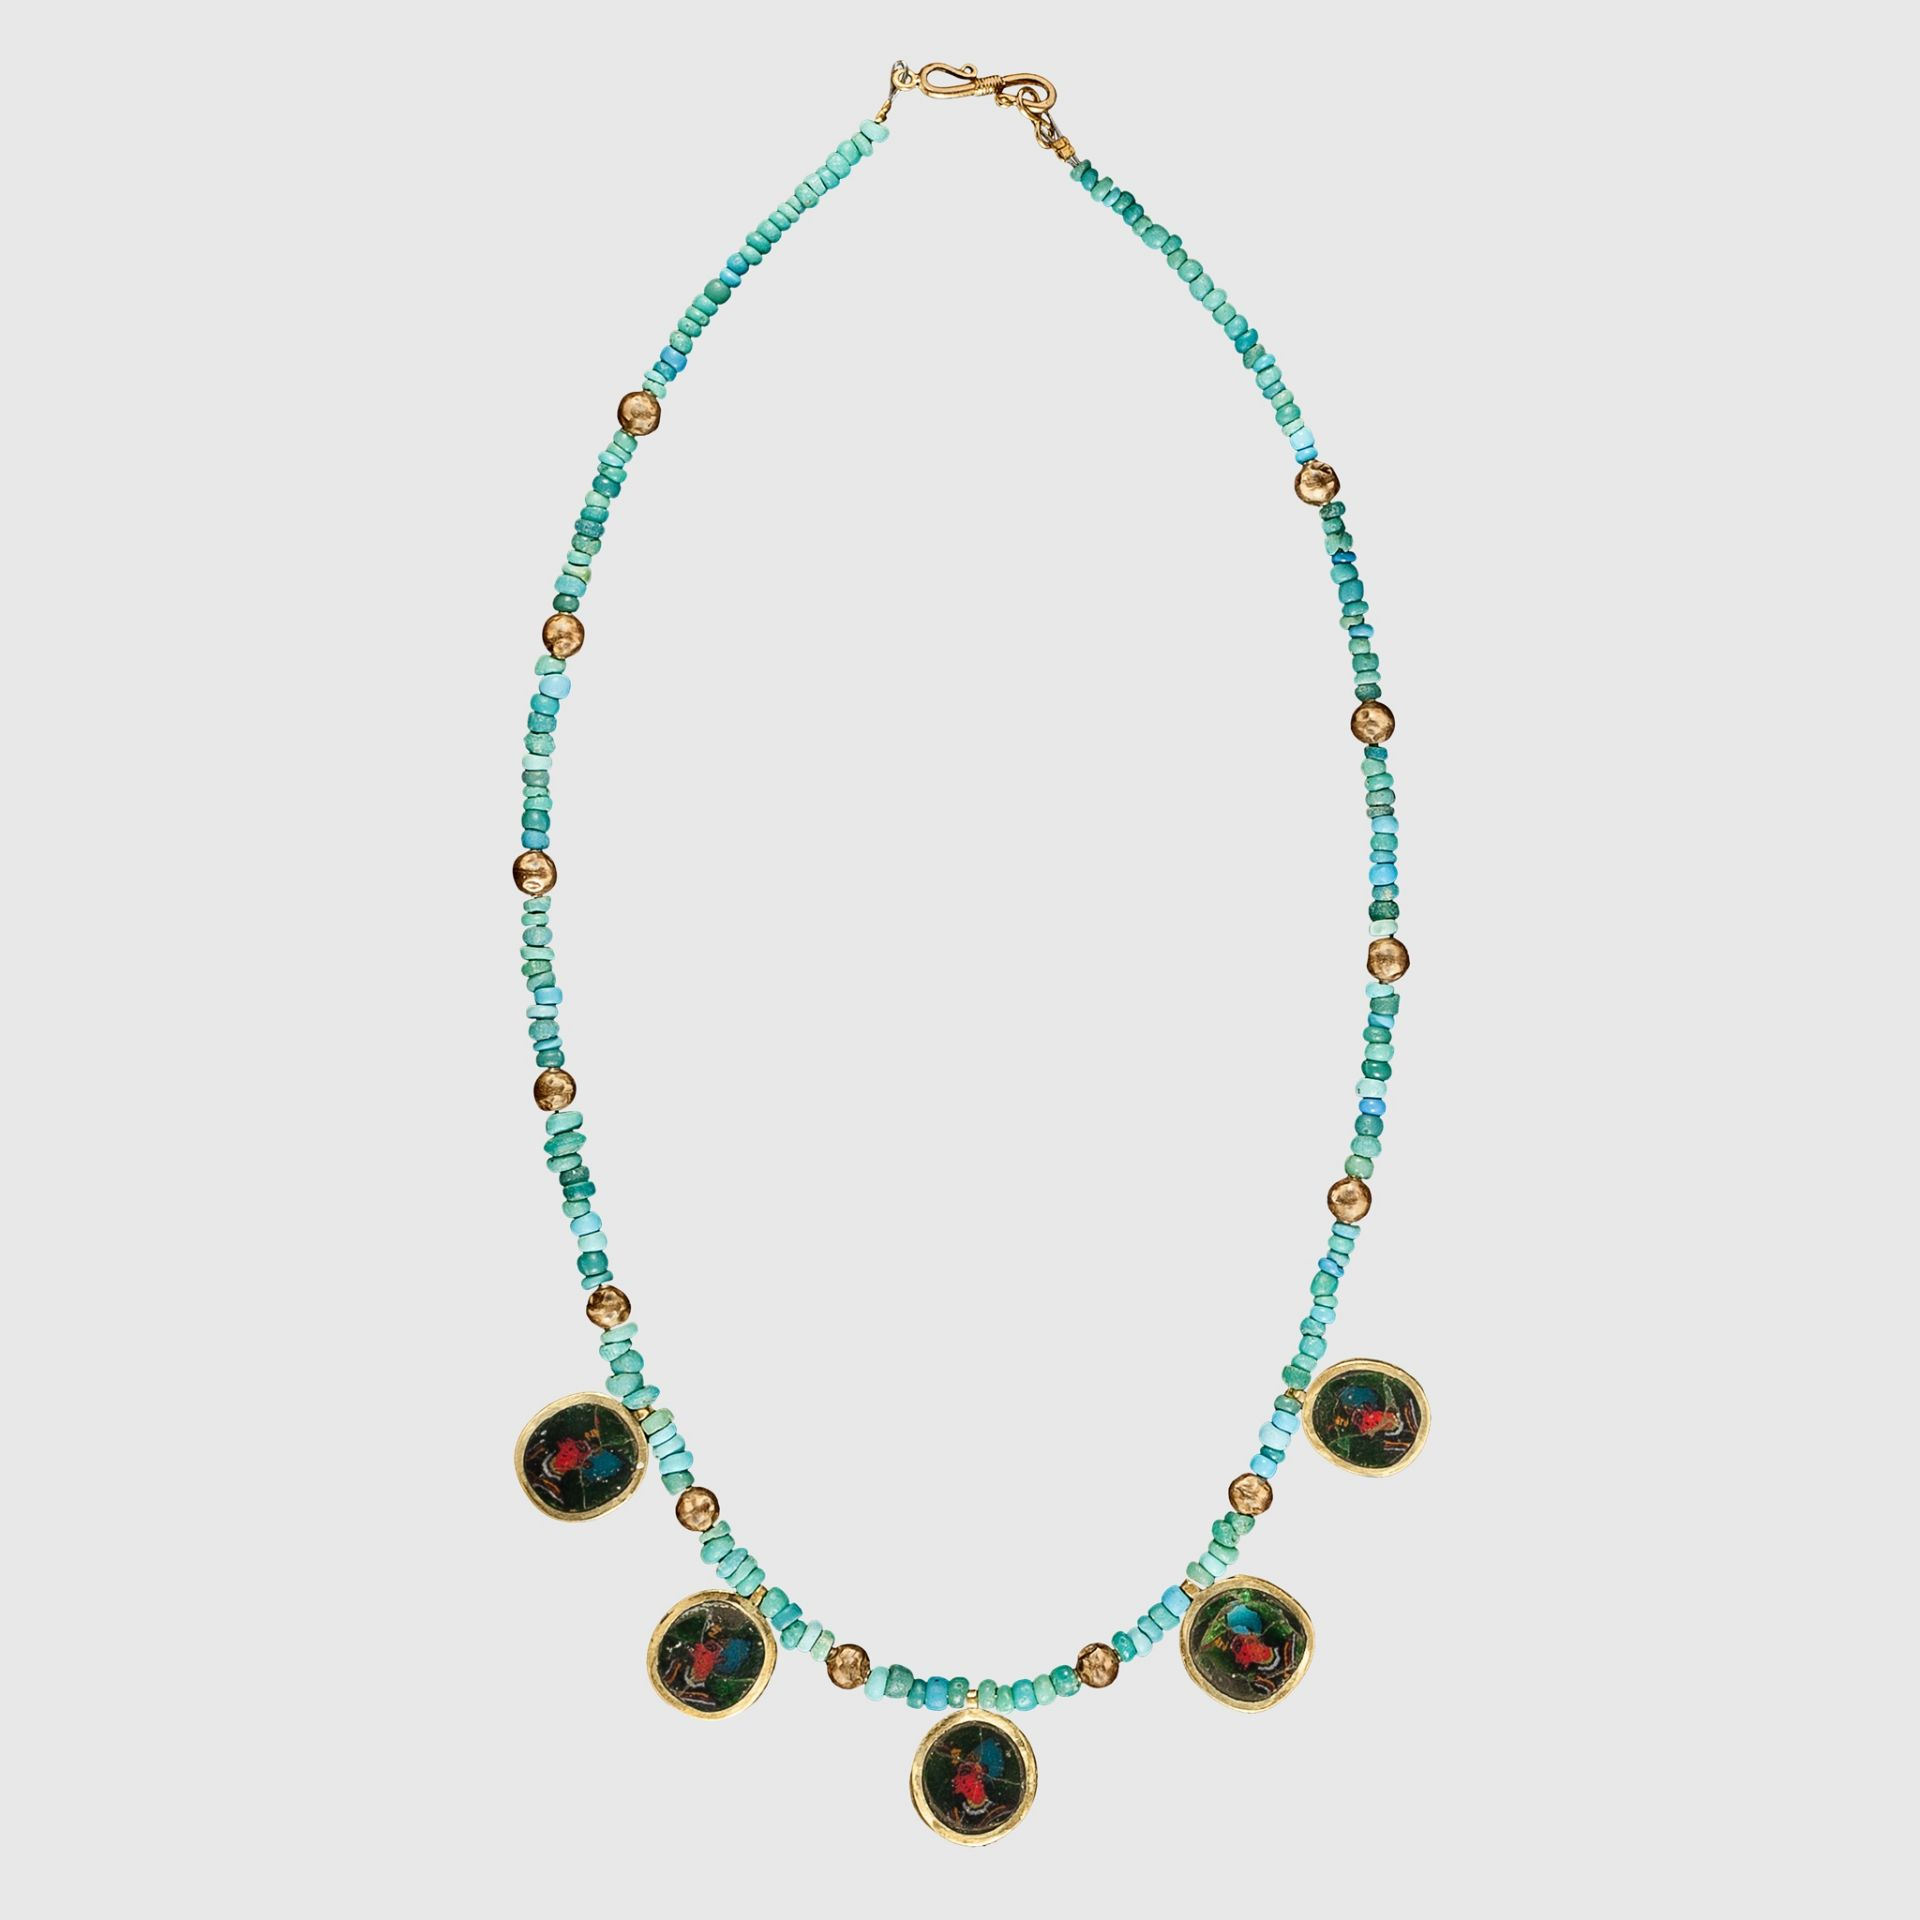 ANCIENT EGYPTIAN PHARAOH MOSAIC NECKLACE EGYPT, PTOLEMAIC PERIOD, 2ND - 1ST CENTURY B.C.